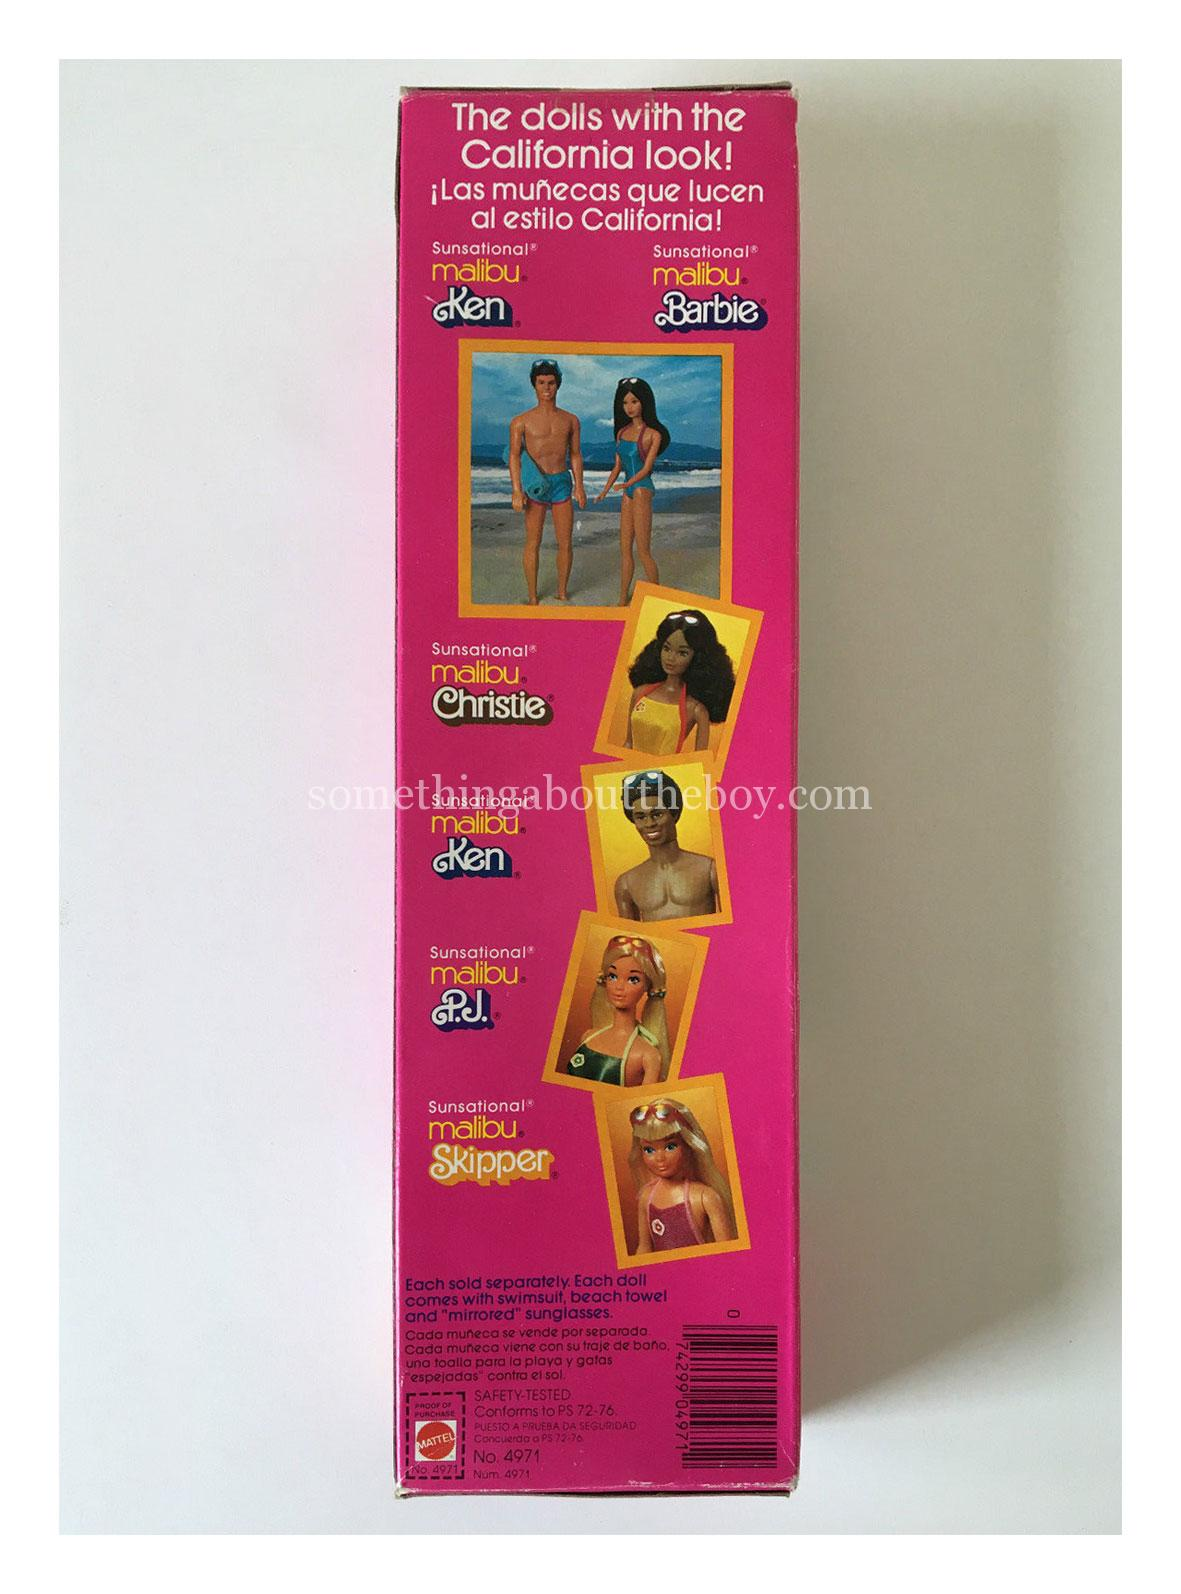 1984 #4971 Sunsational Malibu Ken original packaging